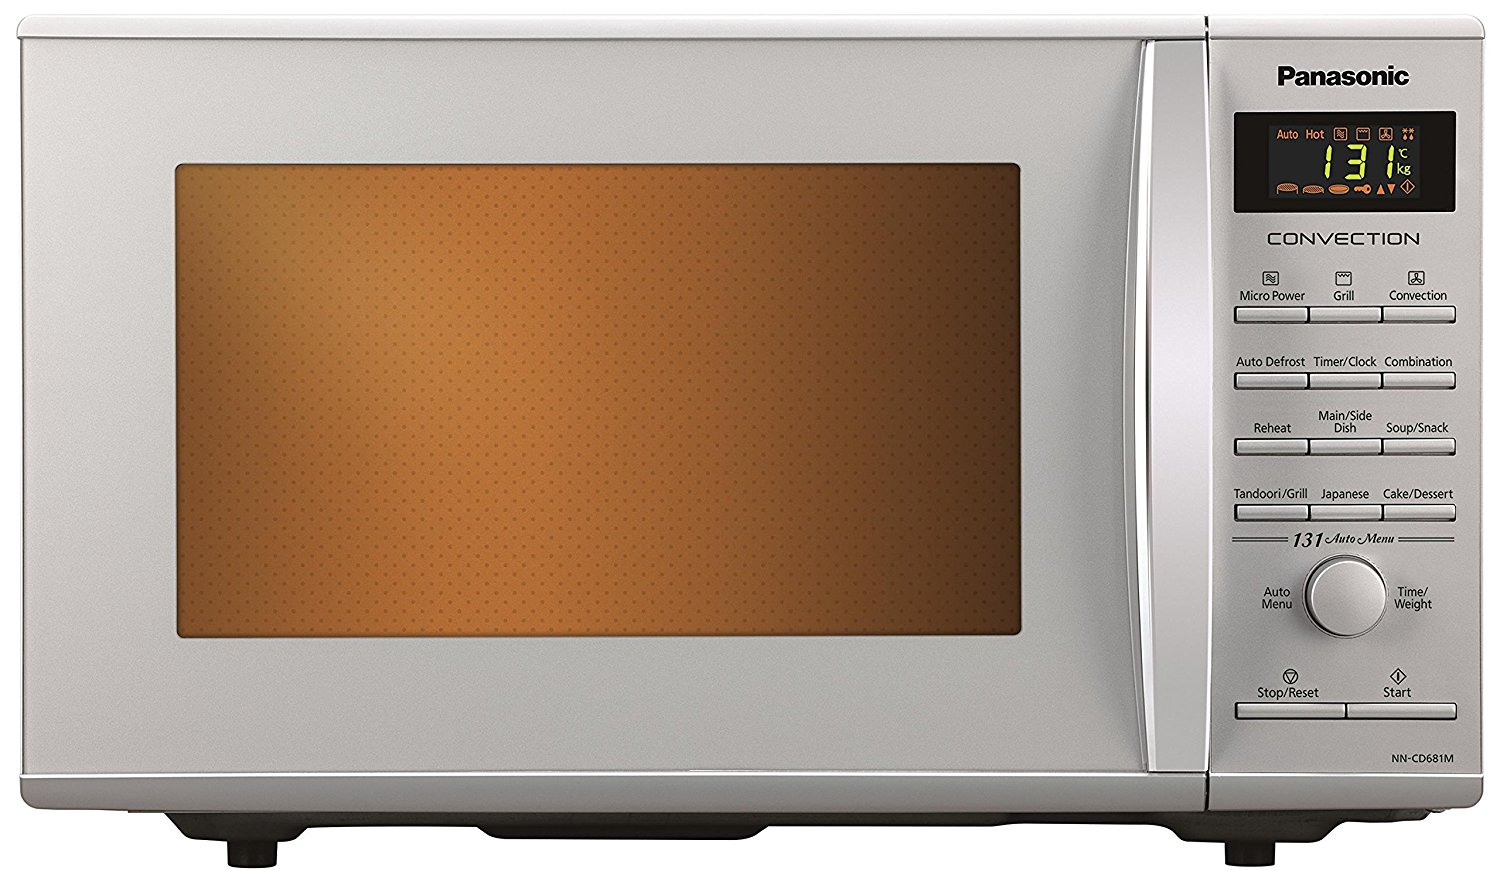 PANASONIC LTR NN CD674MFDG CONVECTION